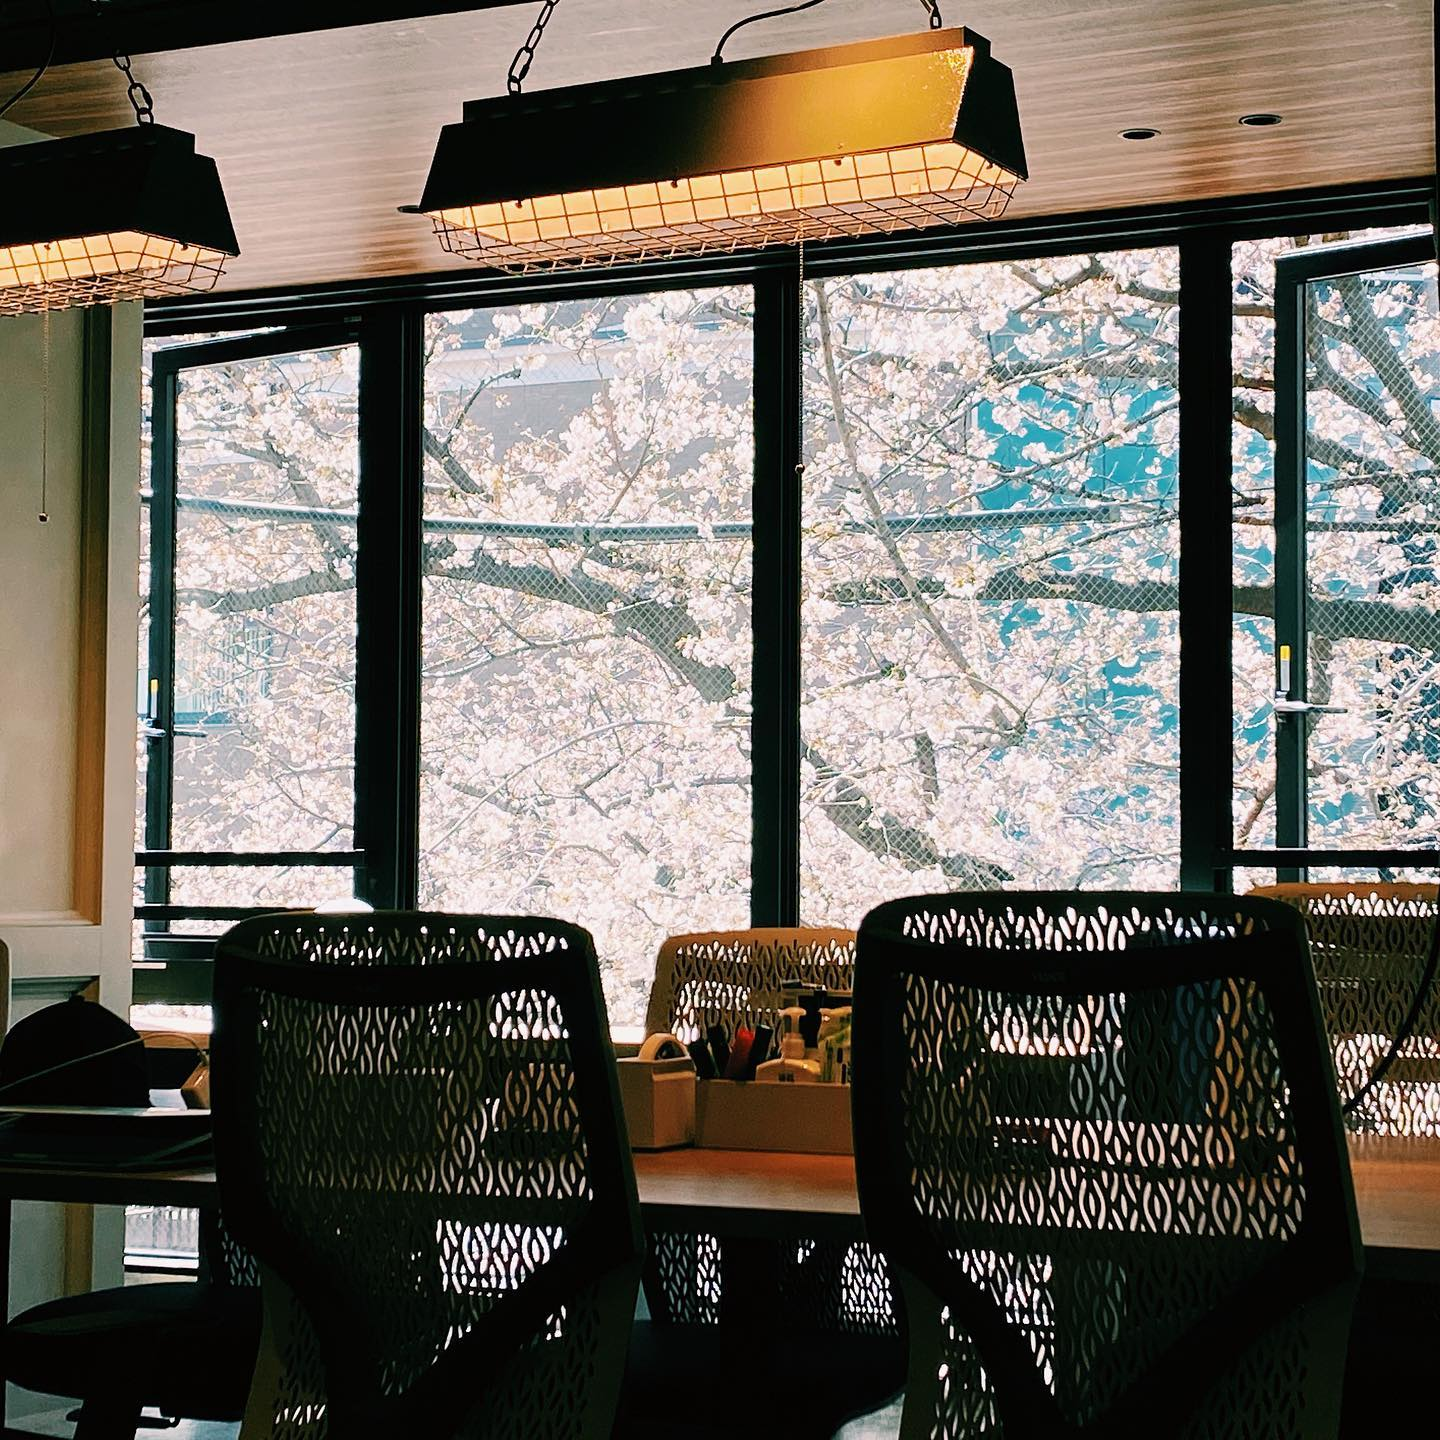 _ Cherry blossom season at the AOI Global Nakameguro office   A stunning spring view through our windows  #weeklyinspiration #tokyocherryblossom